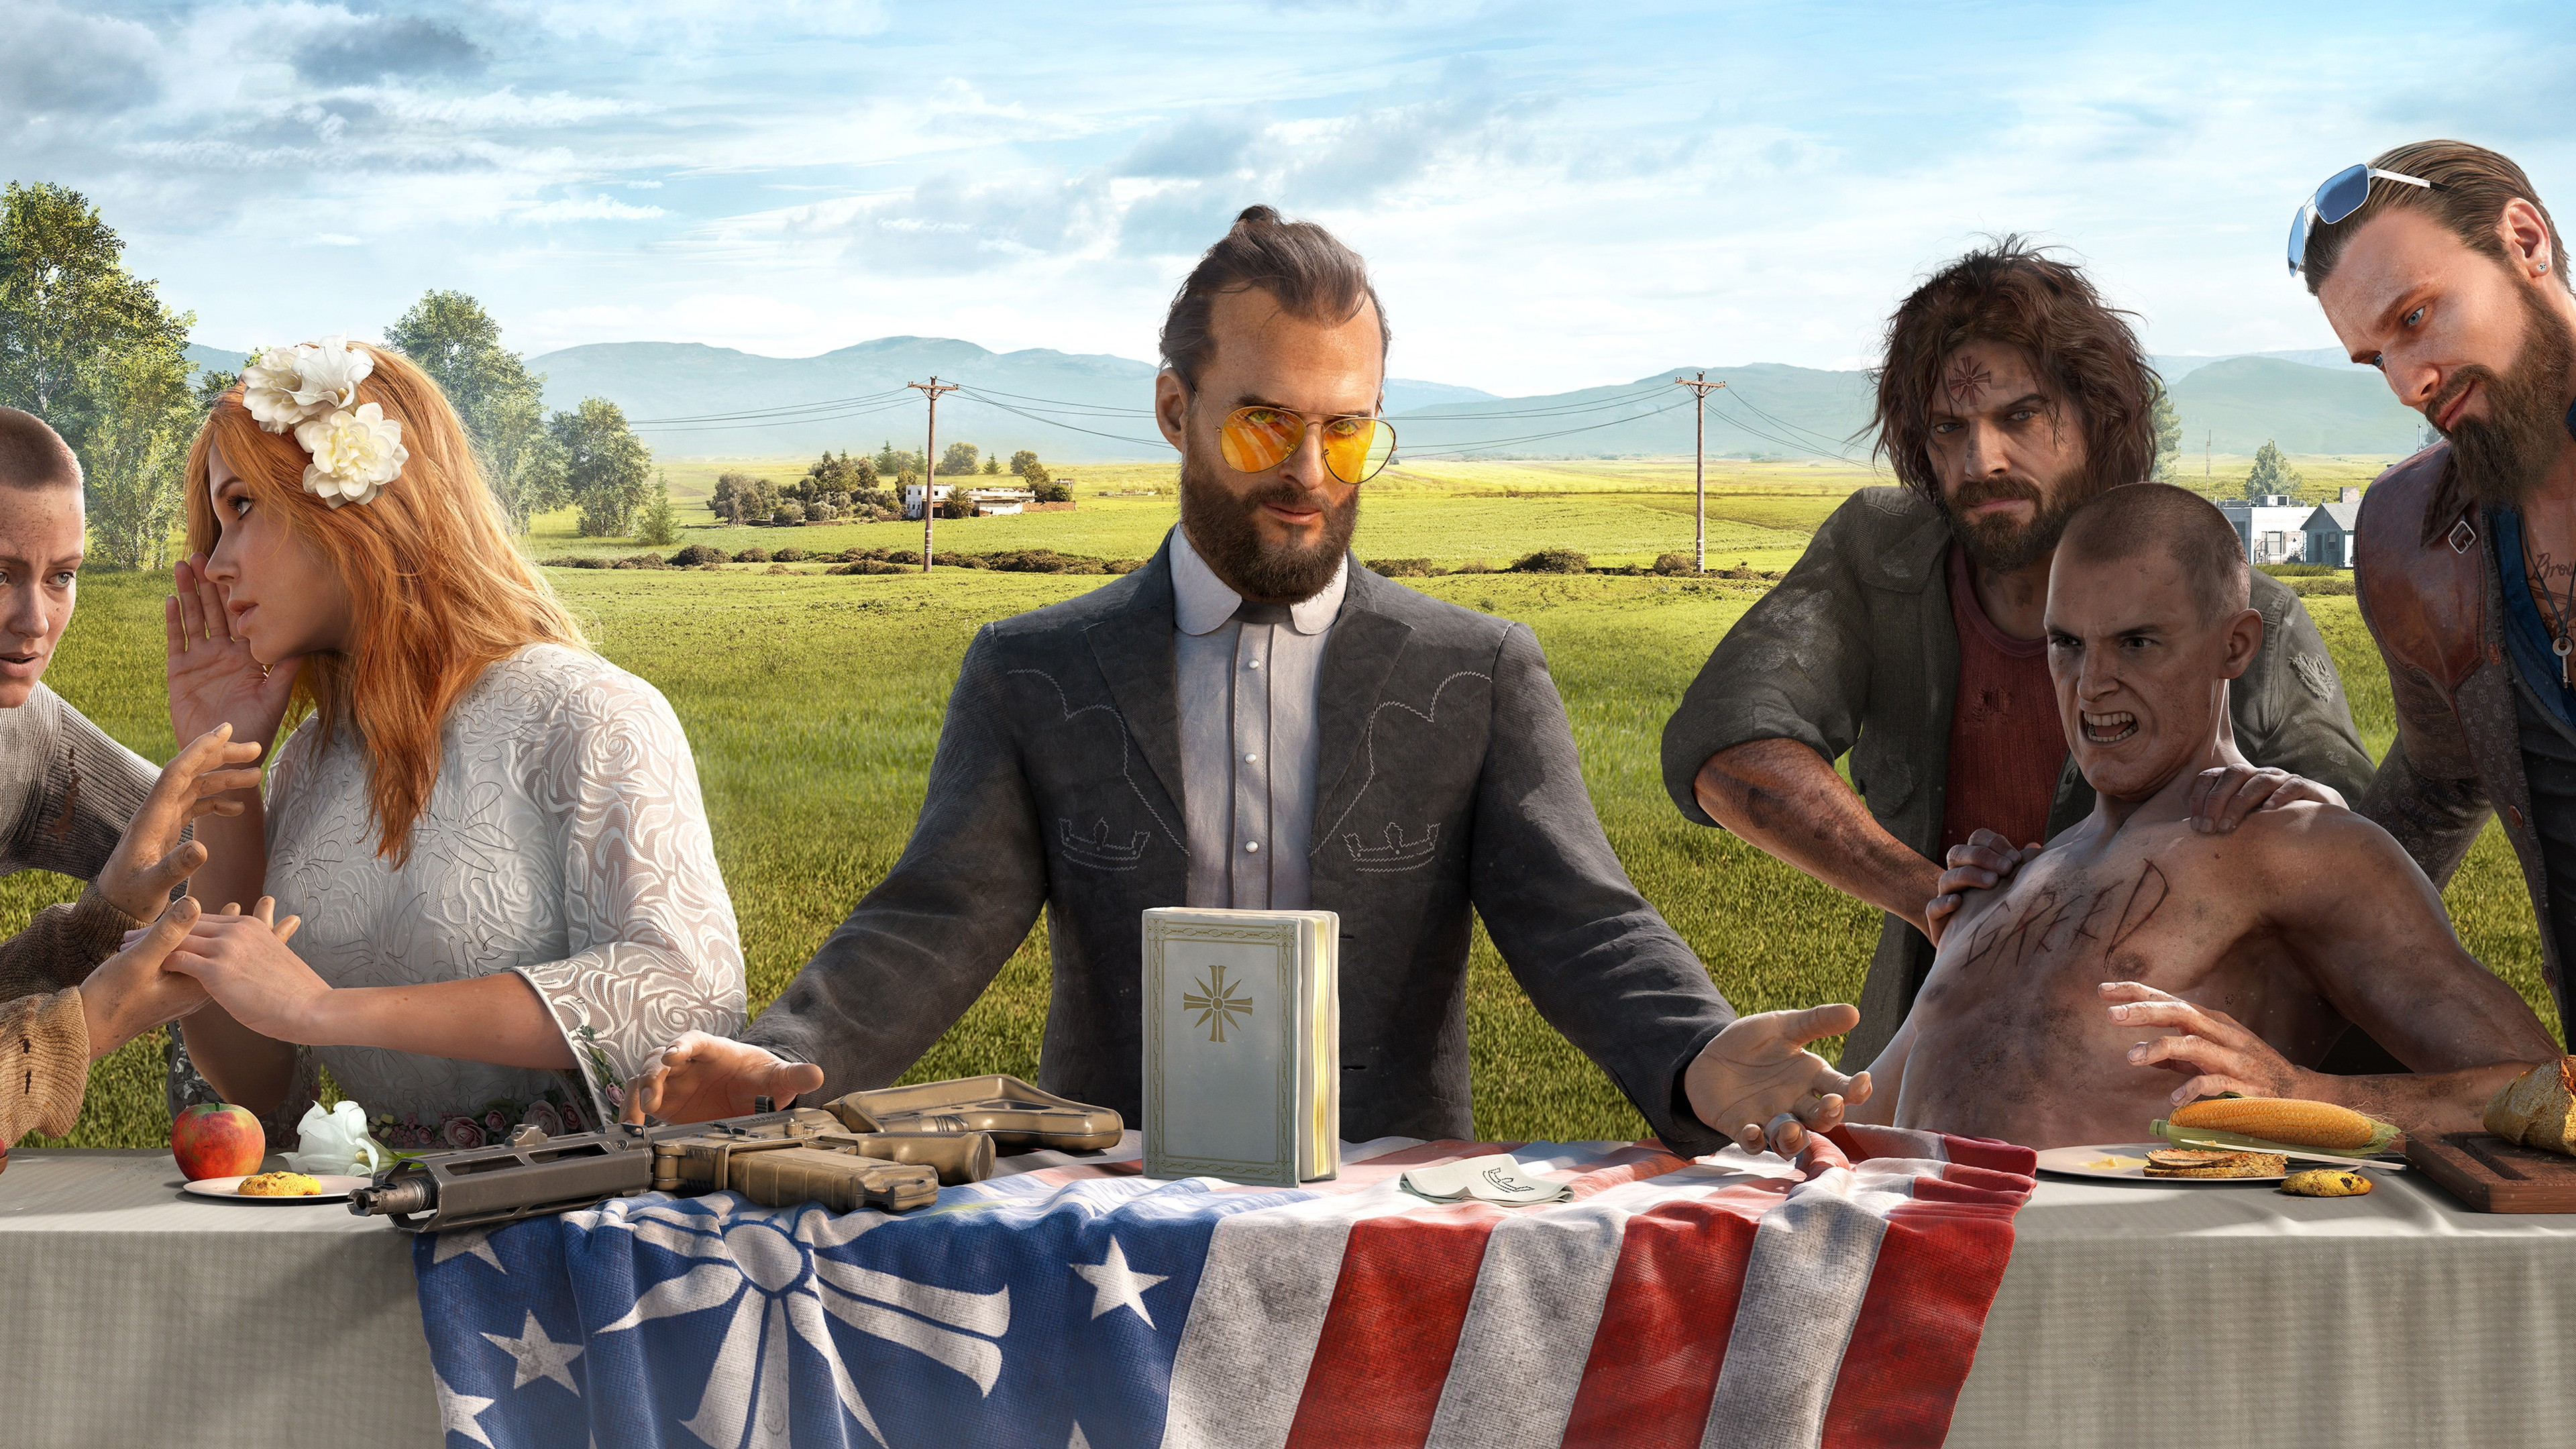 Complete Fixes And Solutions For Far Cry 5 On Steam Chaos Hour